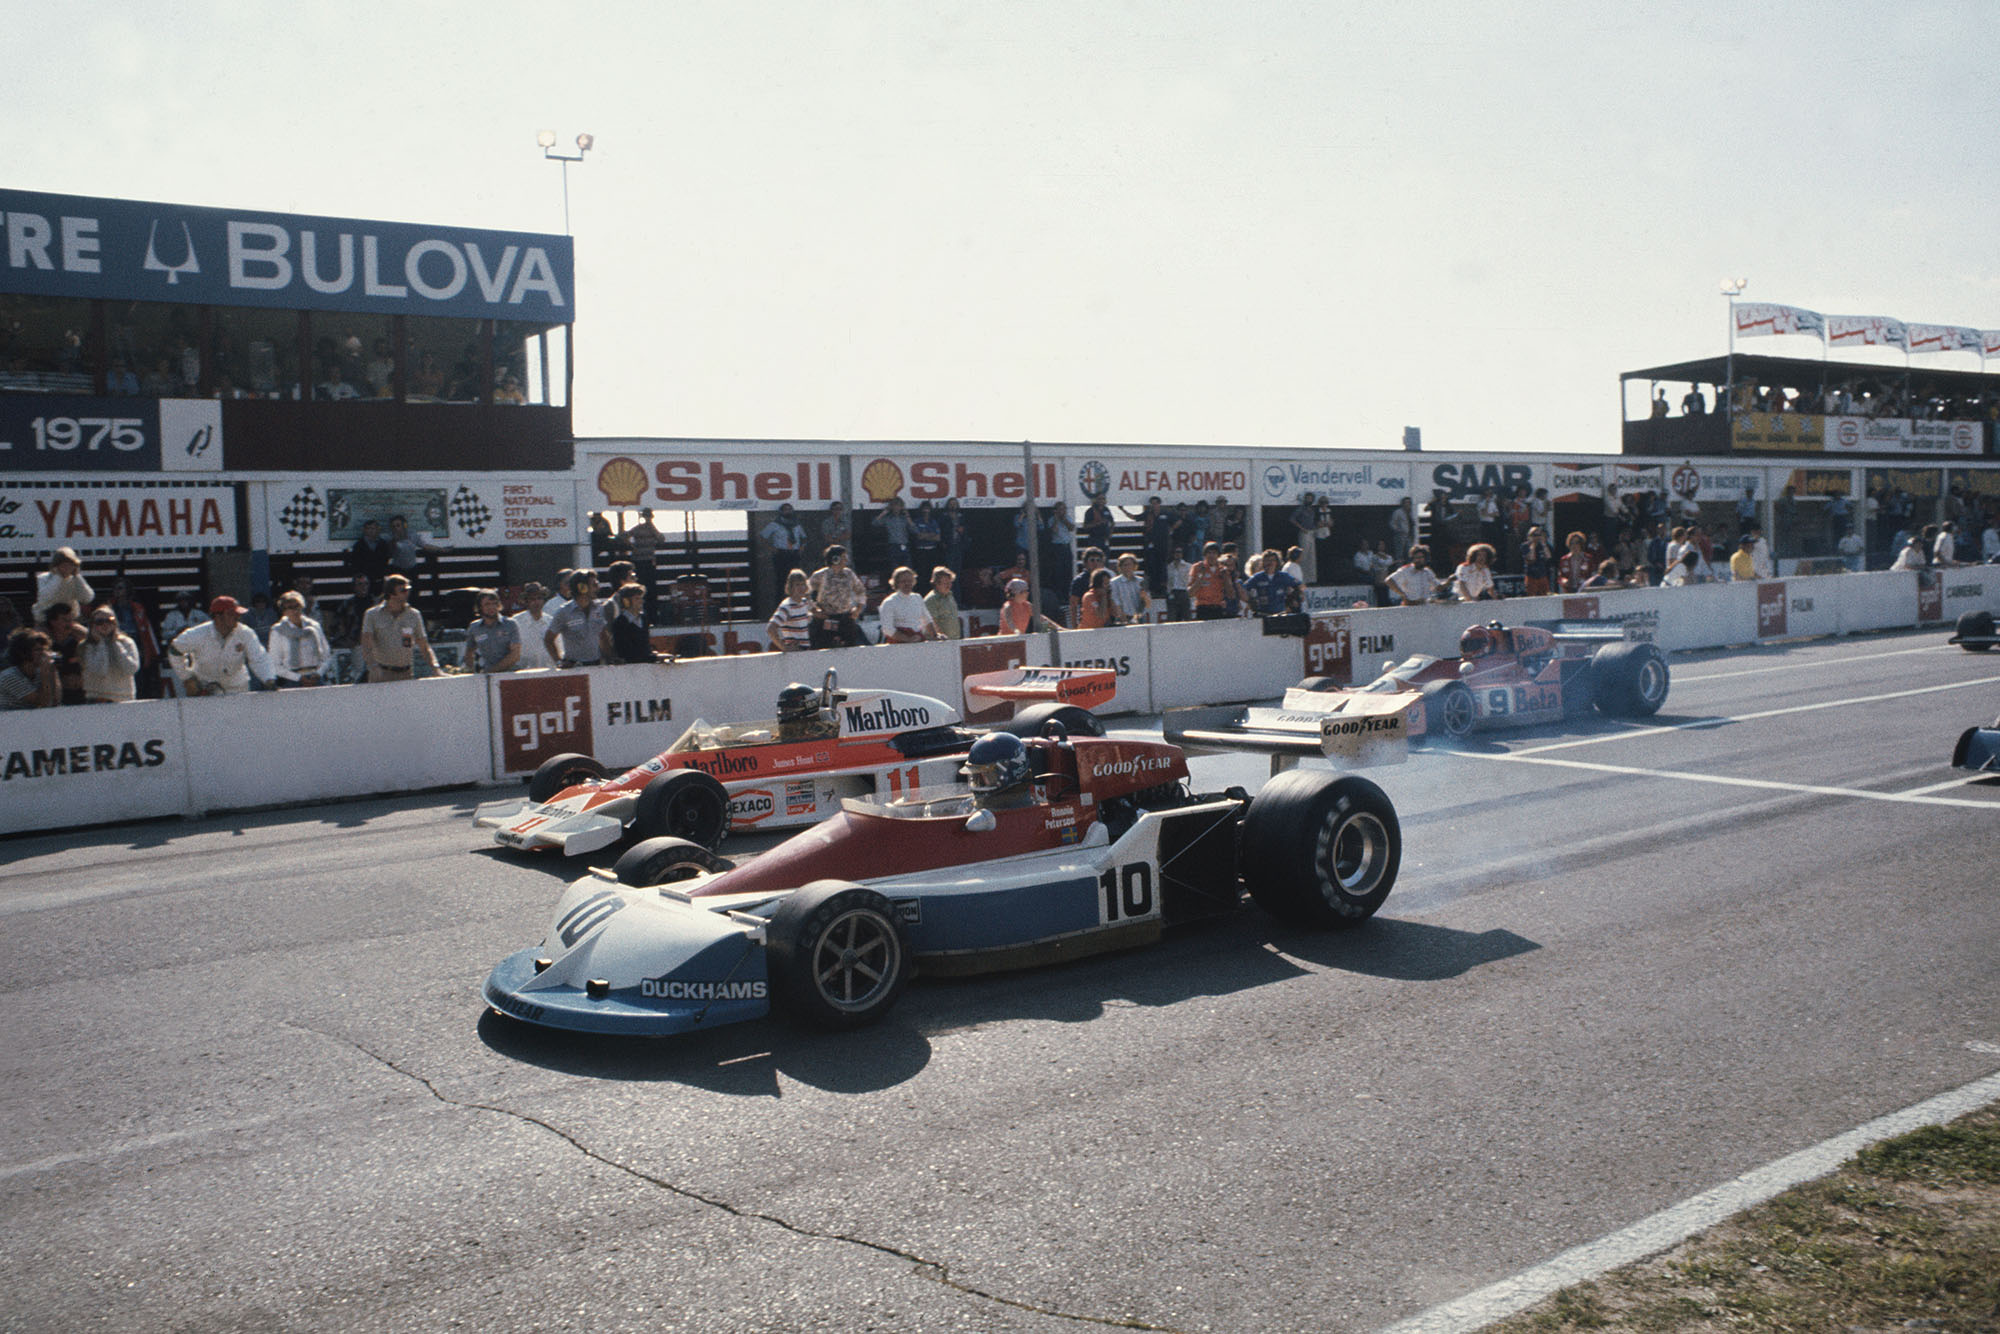 Ronnie Peterson (March) takes the lead at the start of the 1976 Canadian Grand Prix, Mosport Park.